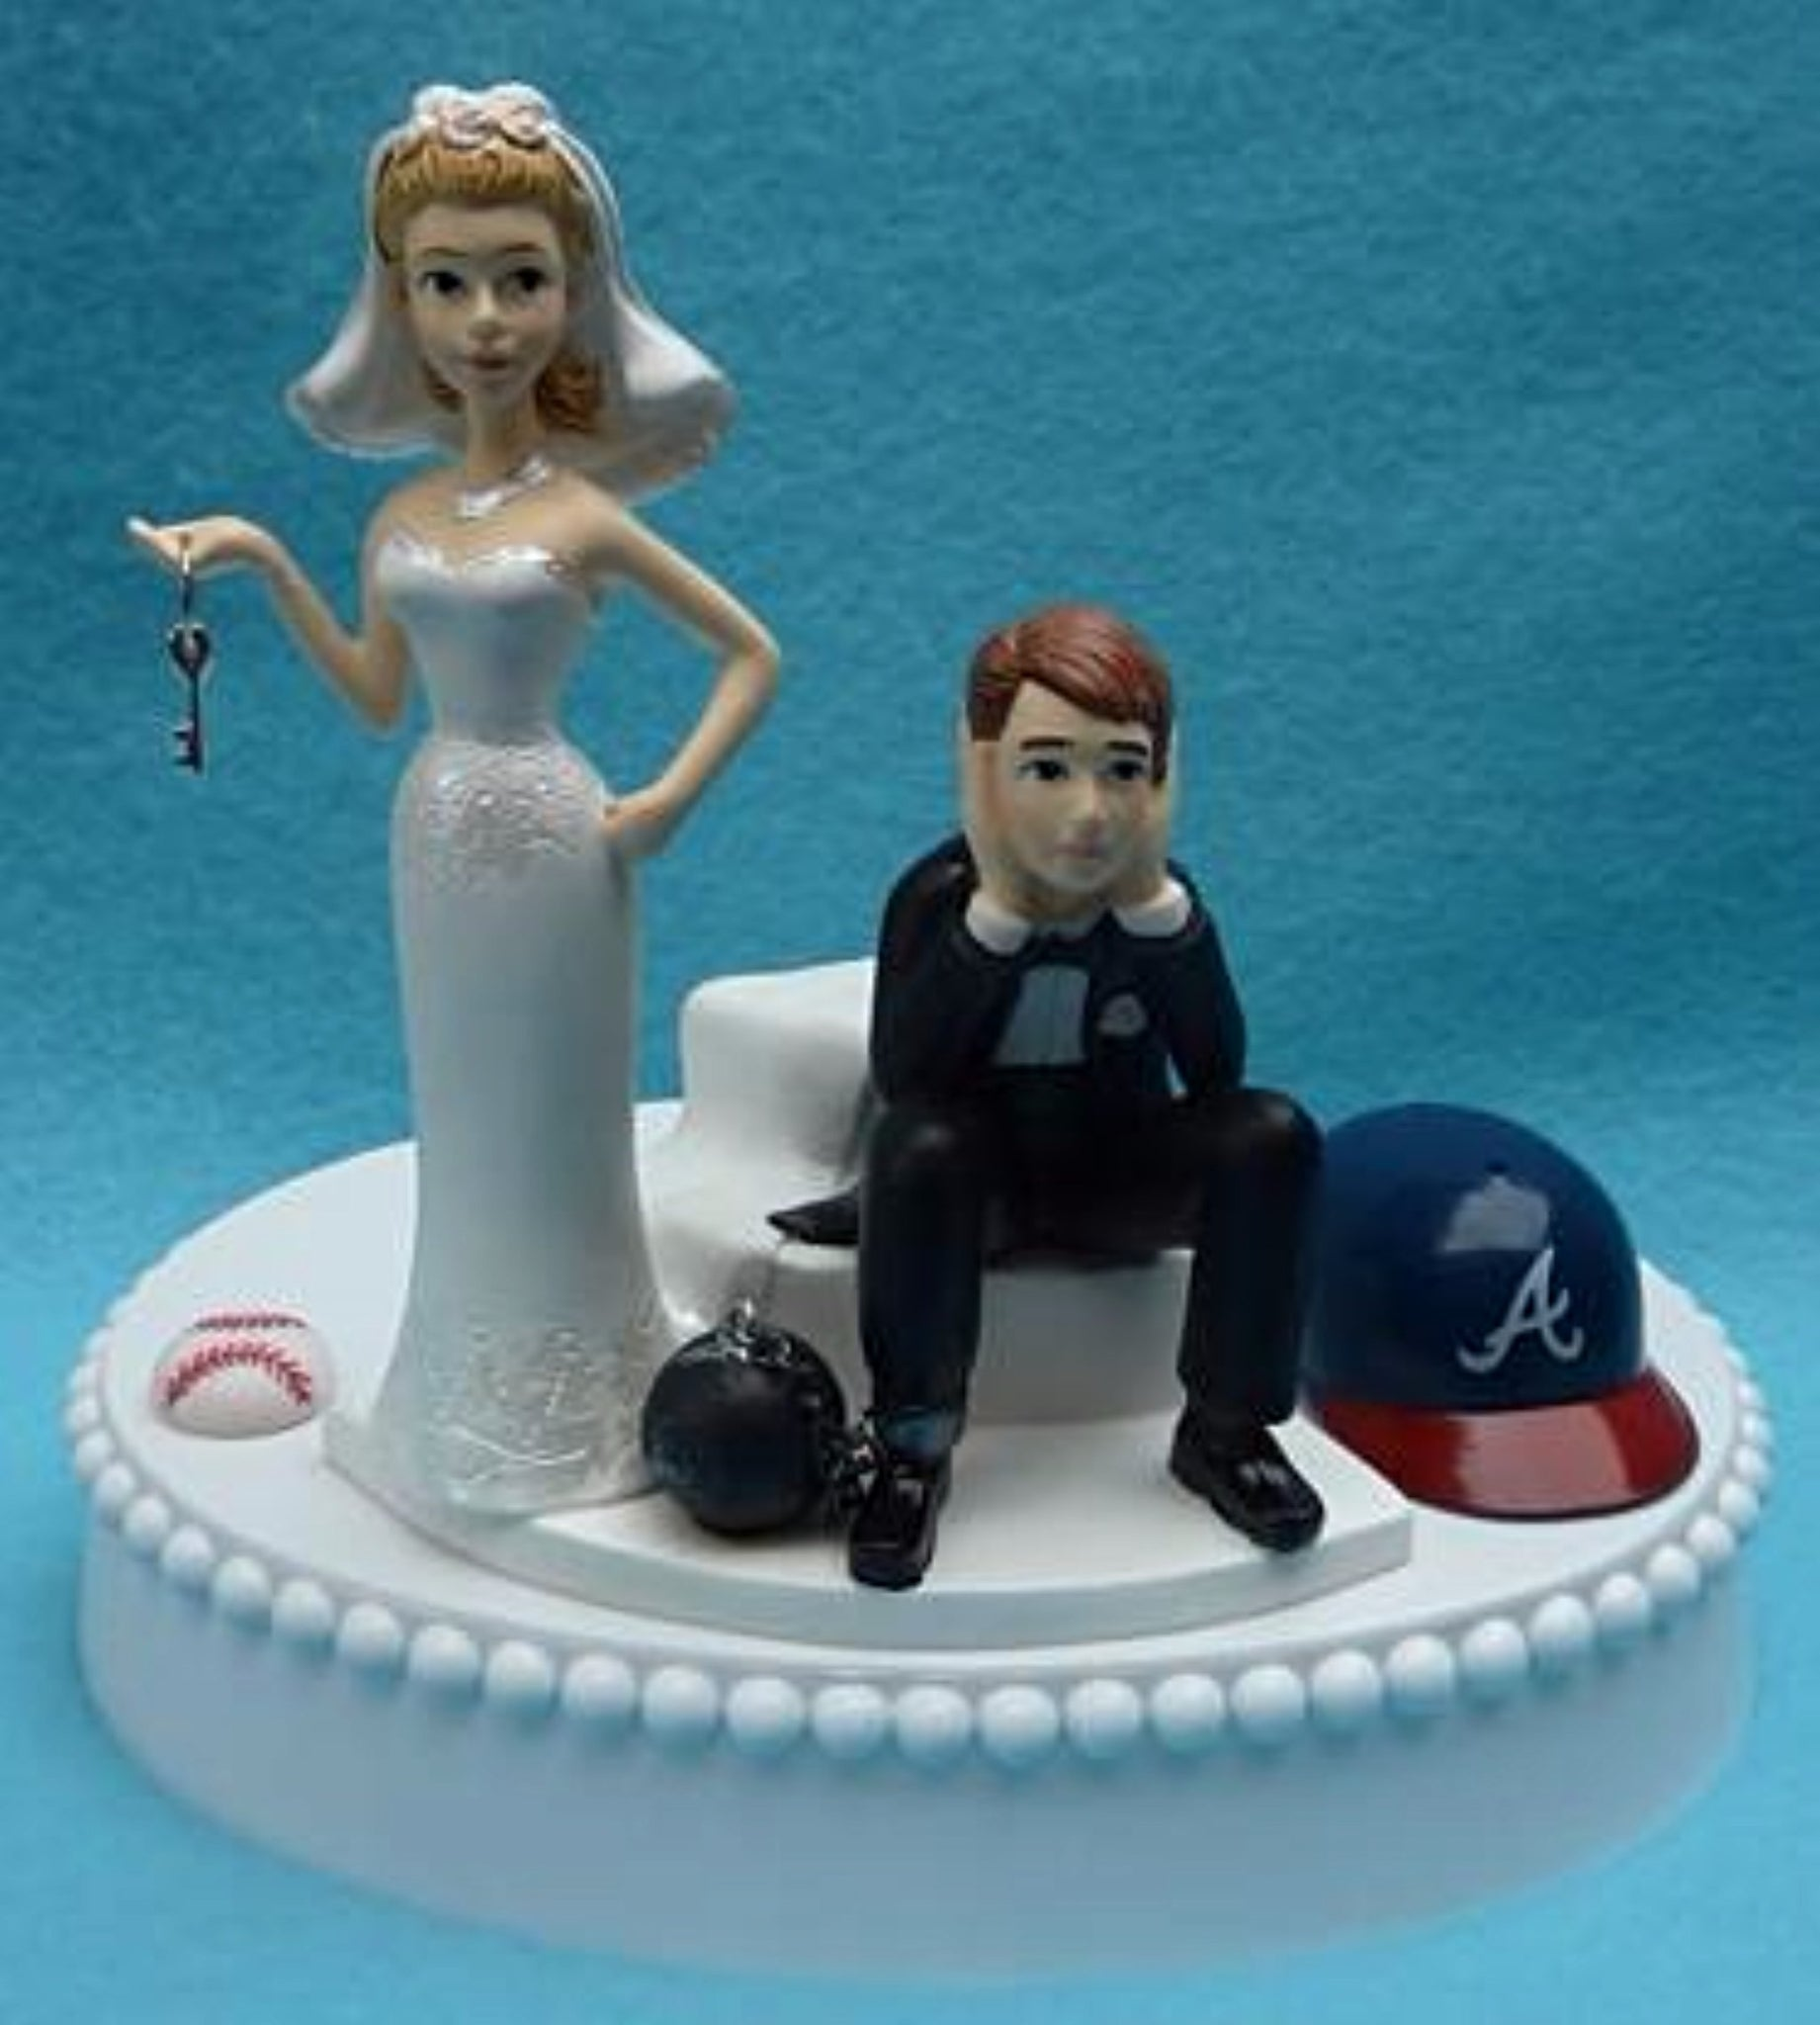 Wedding Cake Topper - Atlanta Braves Baseball Themed Key